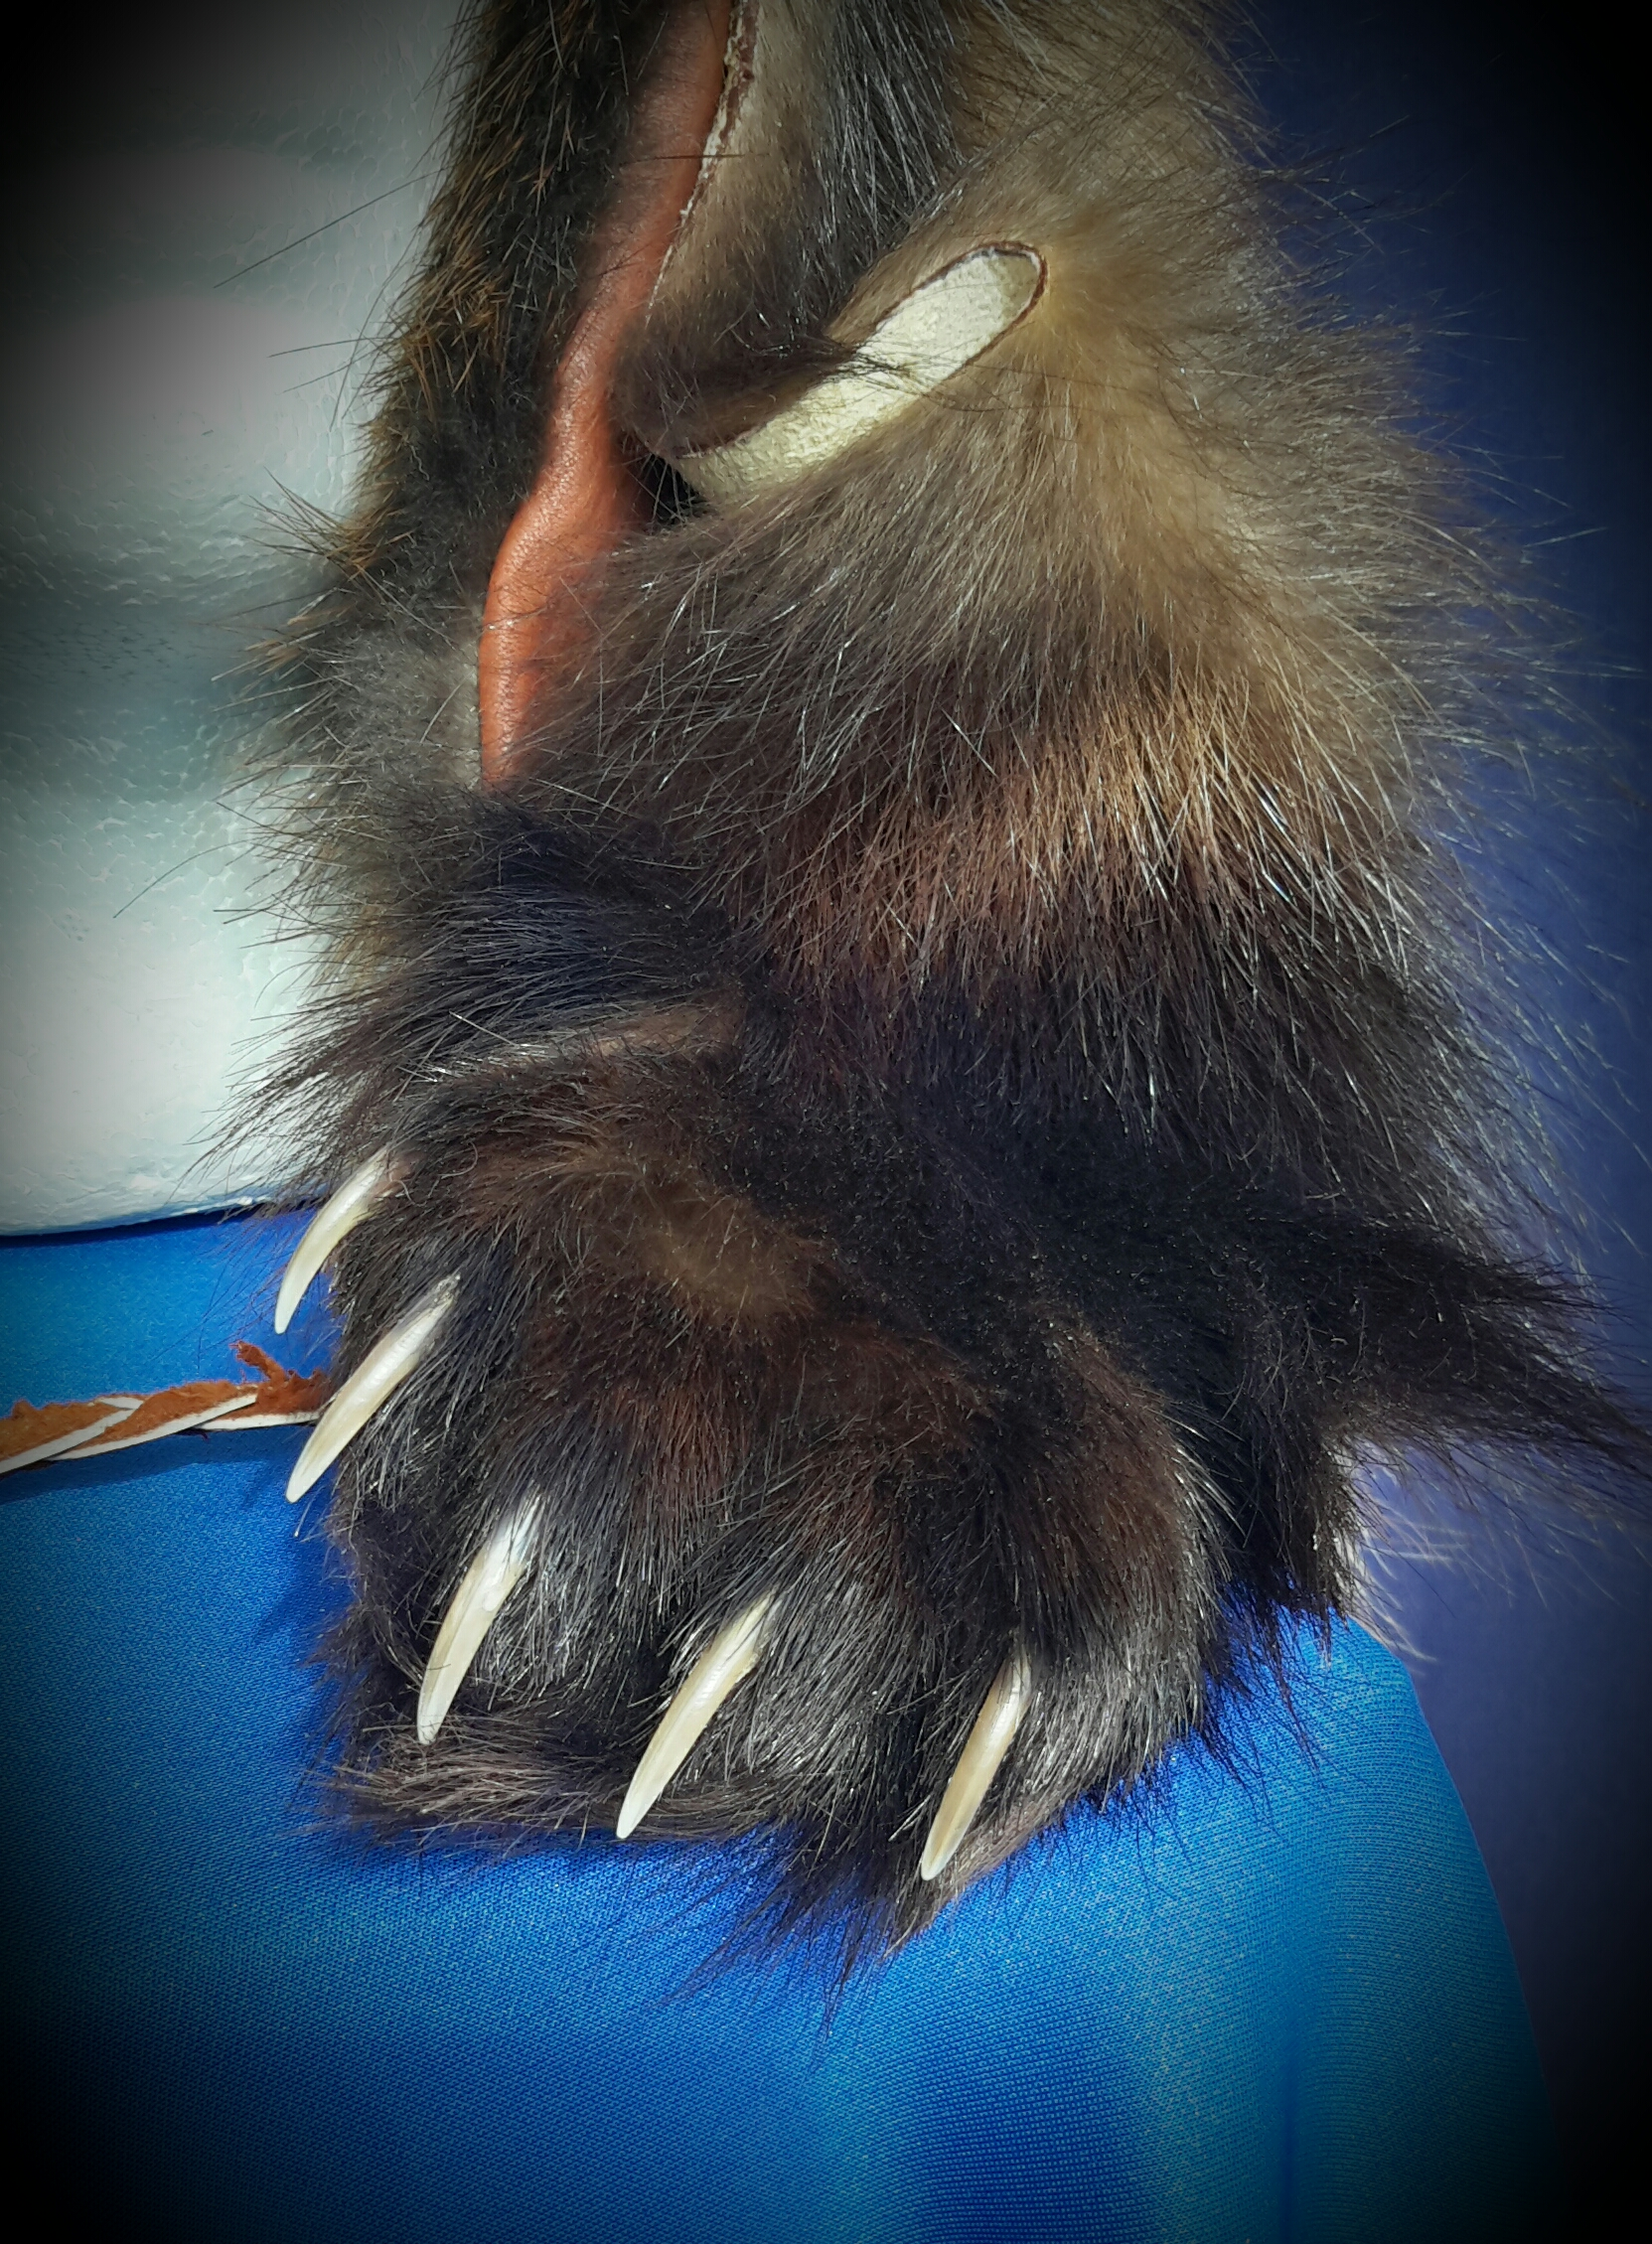 Front paw with sharp claws